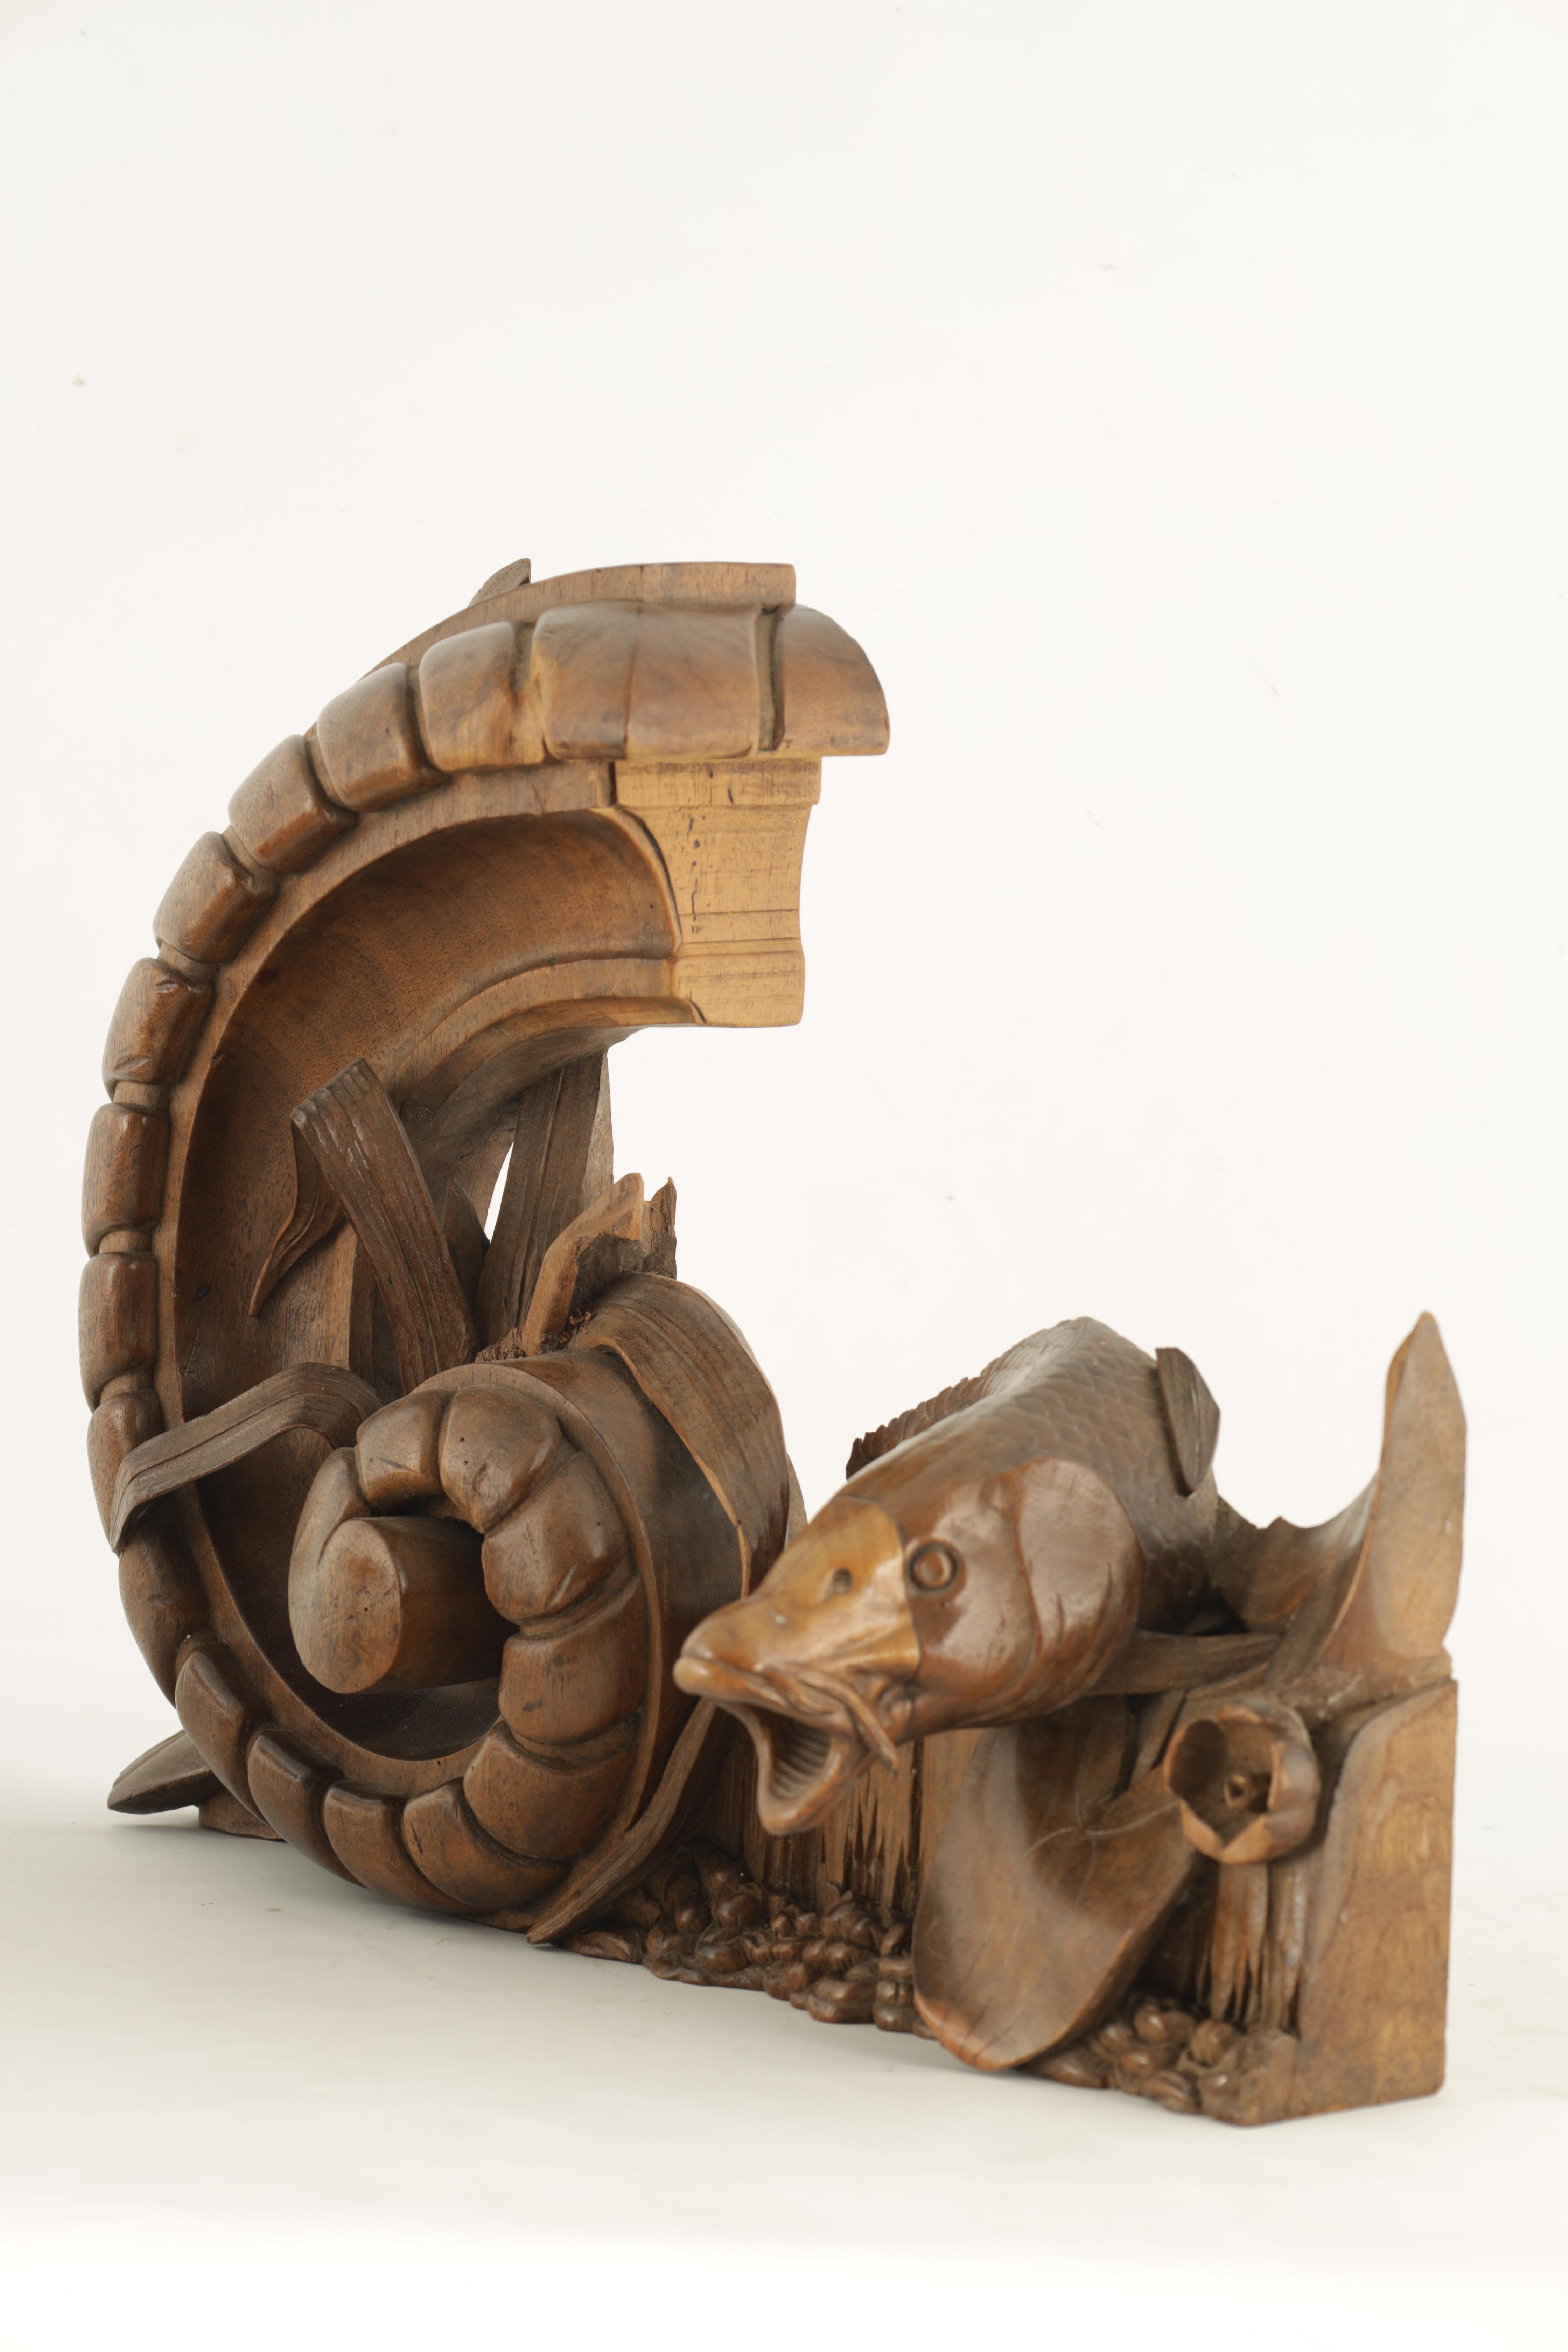 A 19TH CENTURY WALNUT CARVING OF A CARP next to a gadrooned scroll with reeds 49cm wide 38cm high - Image 4 of 6